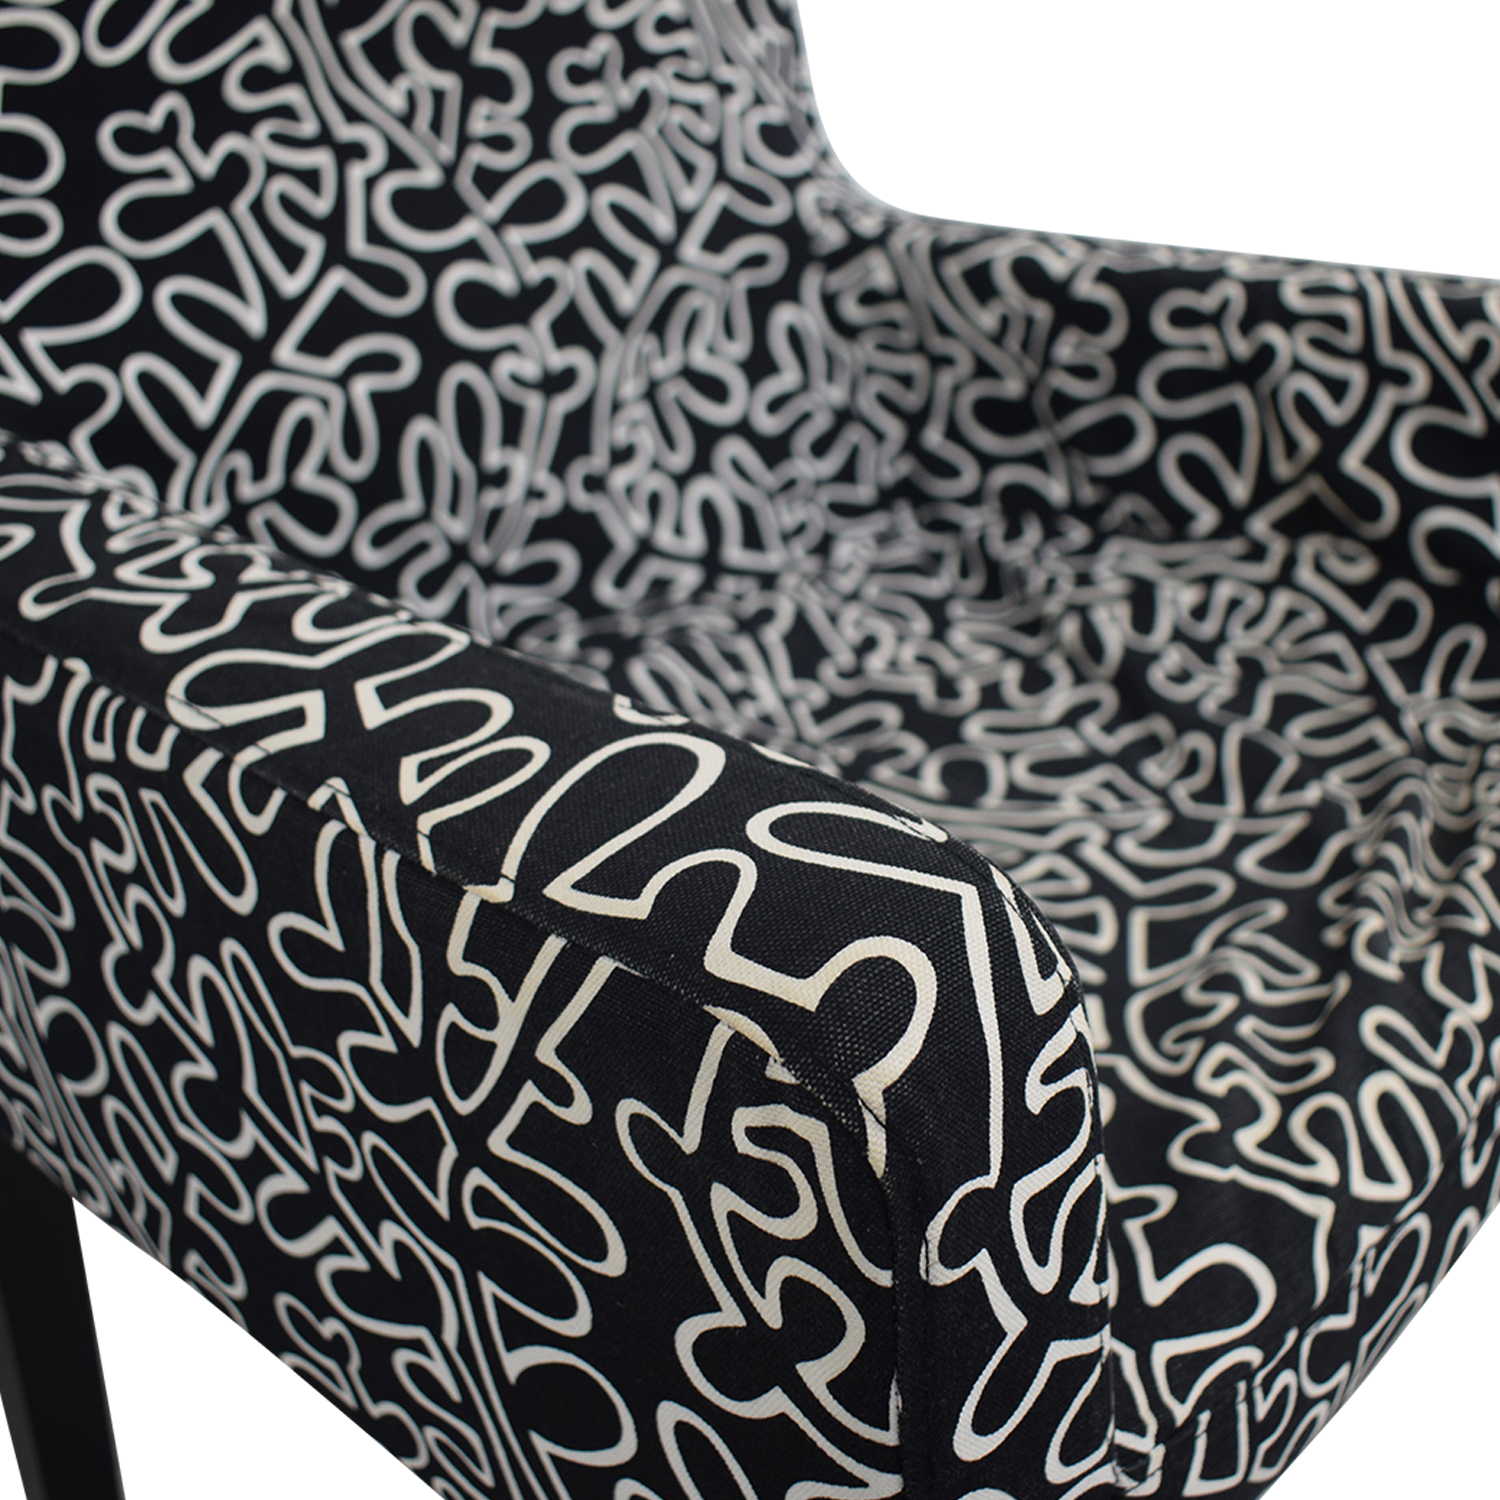 Black and White Print Chair used